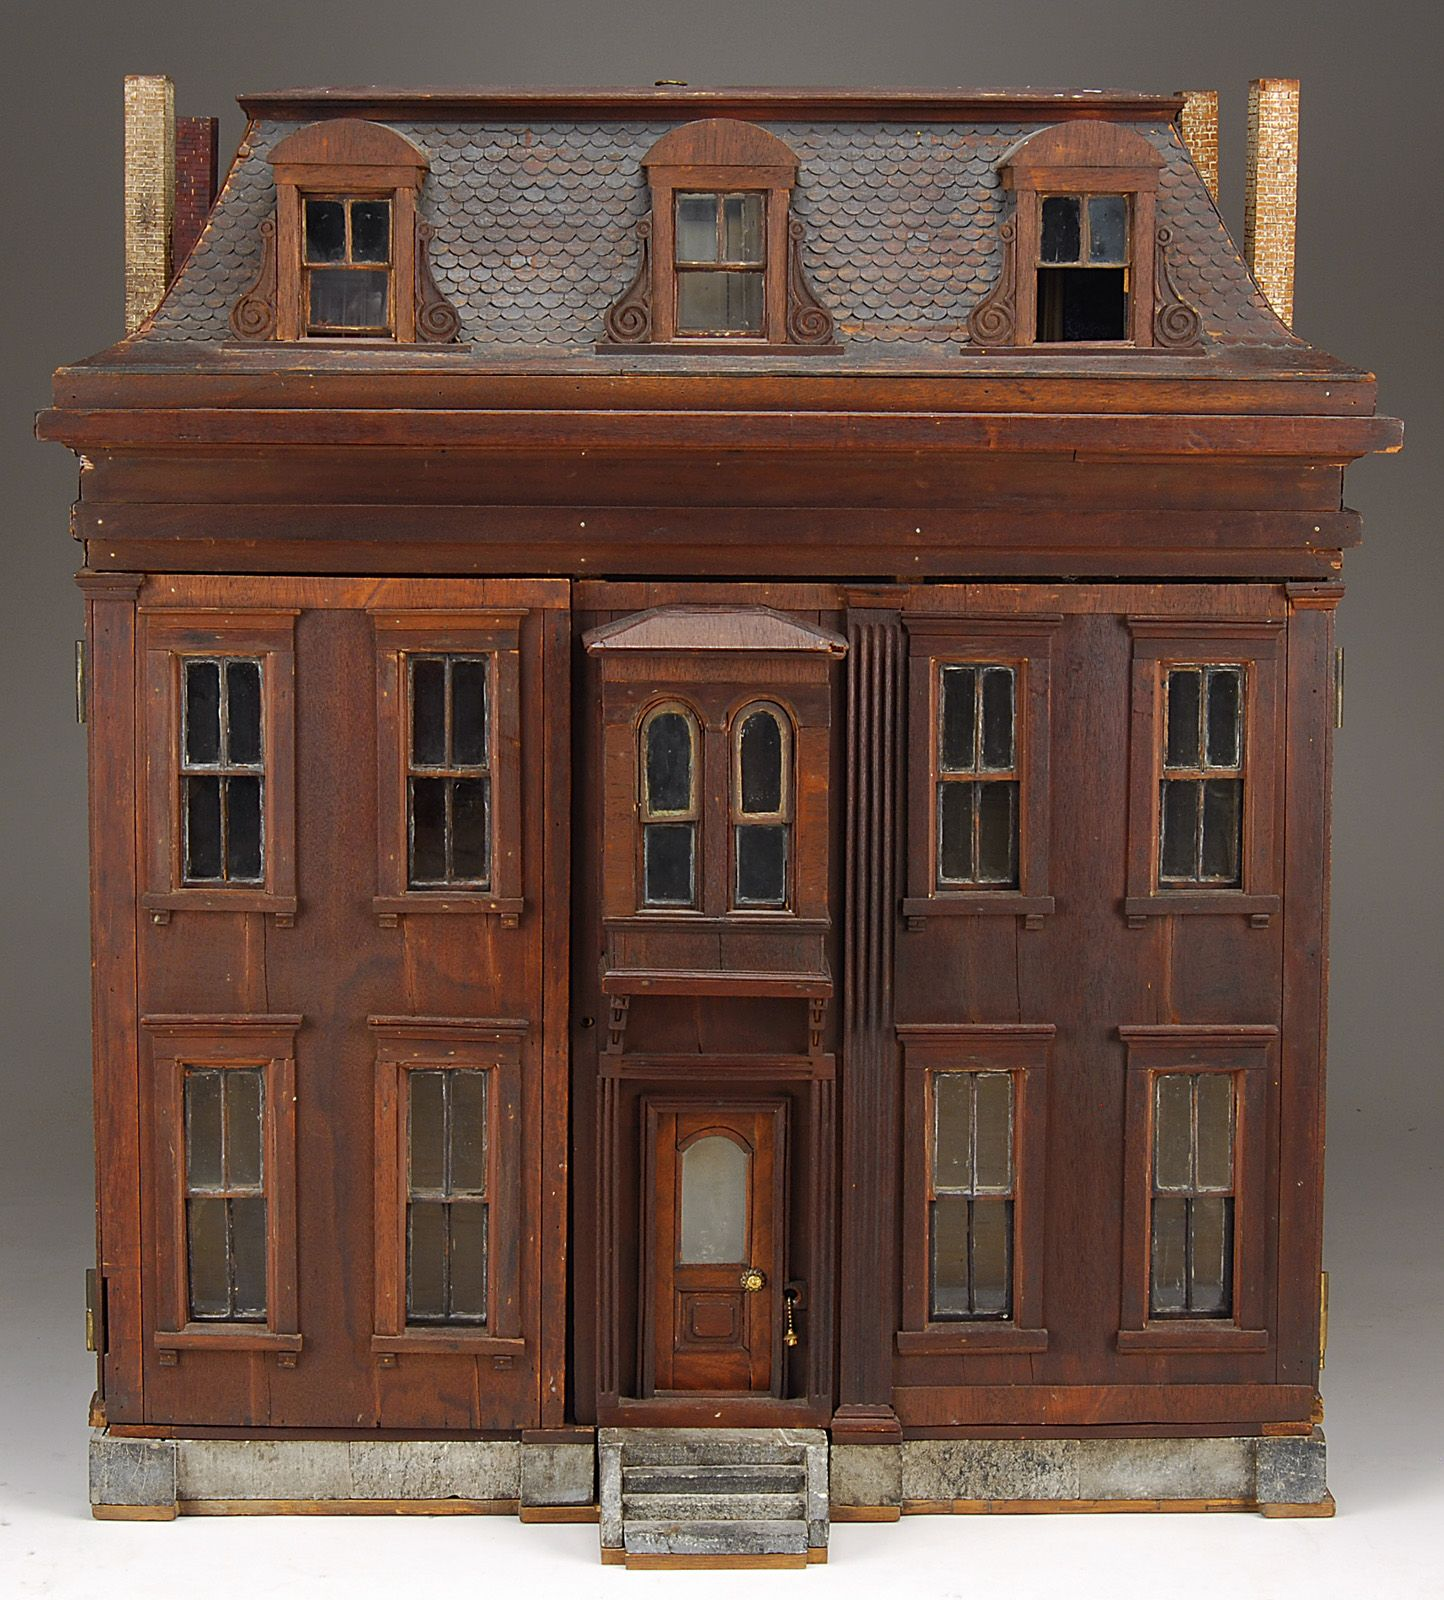 Antique Doll Houses For Sale Dioramas And Clever Things Antique